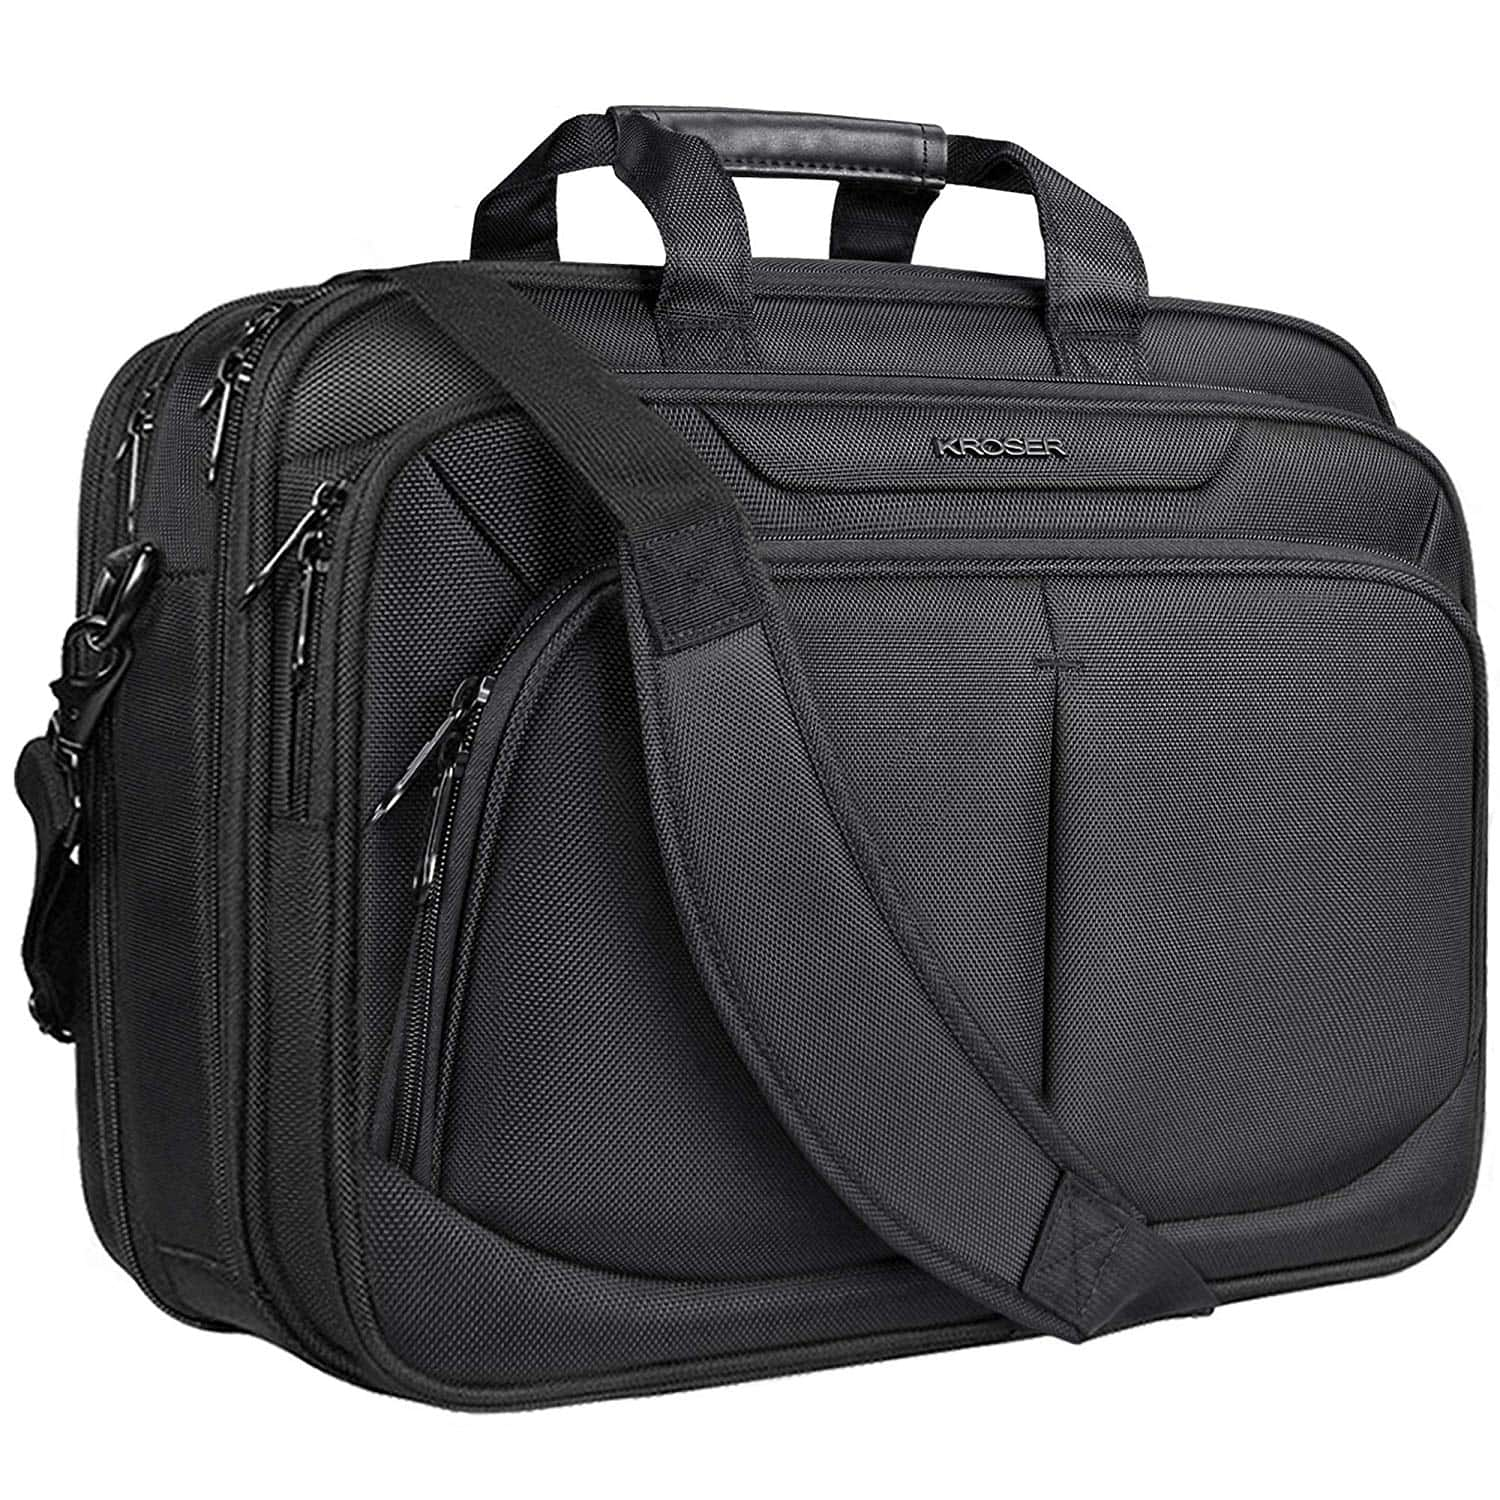 "KROSER 17.1"" Laptop Bag for 15.6""-17"" Laptop Briefcase Water-Repellent Expandable Computer Bag Business Messenger Bag Amazon - $22.49 AC"